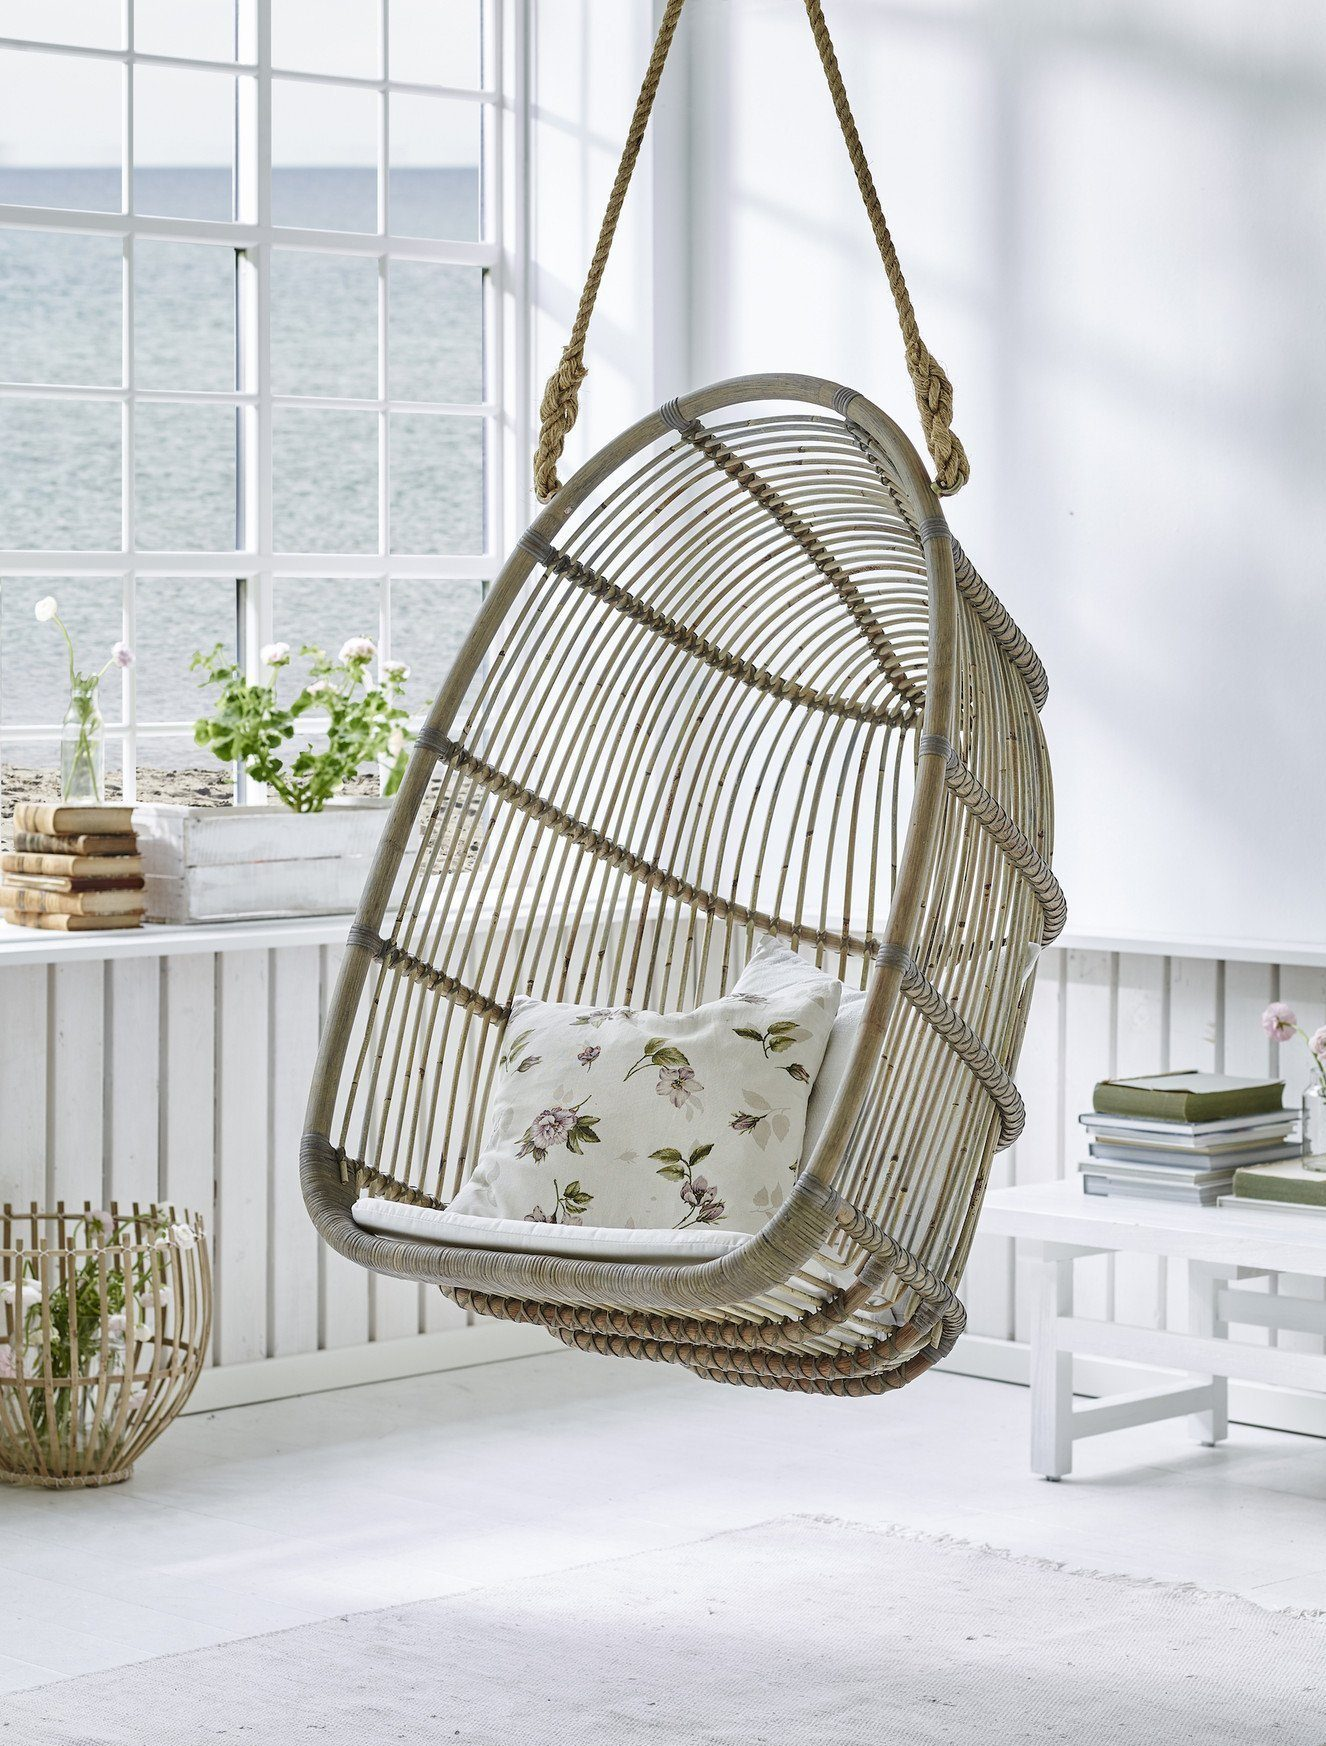 renoir-swing-chair-made-of-naturall-rattan-hand-crafted